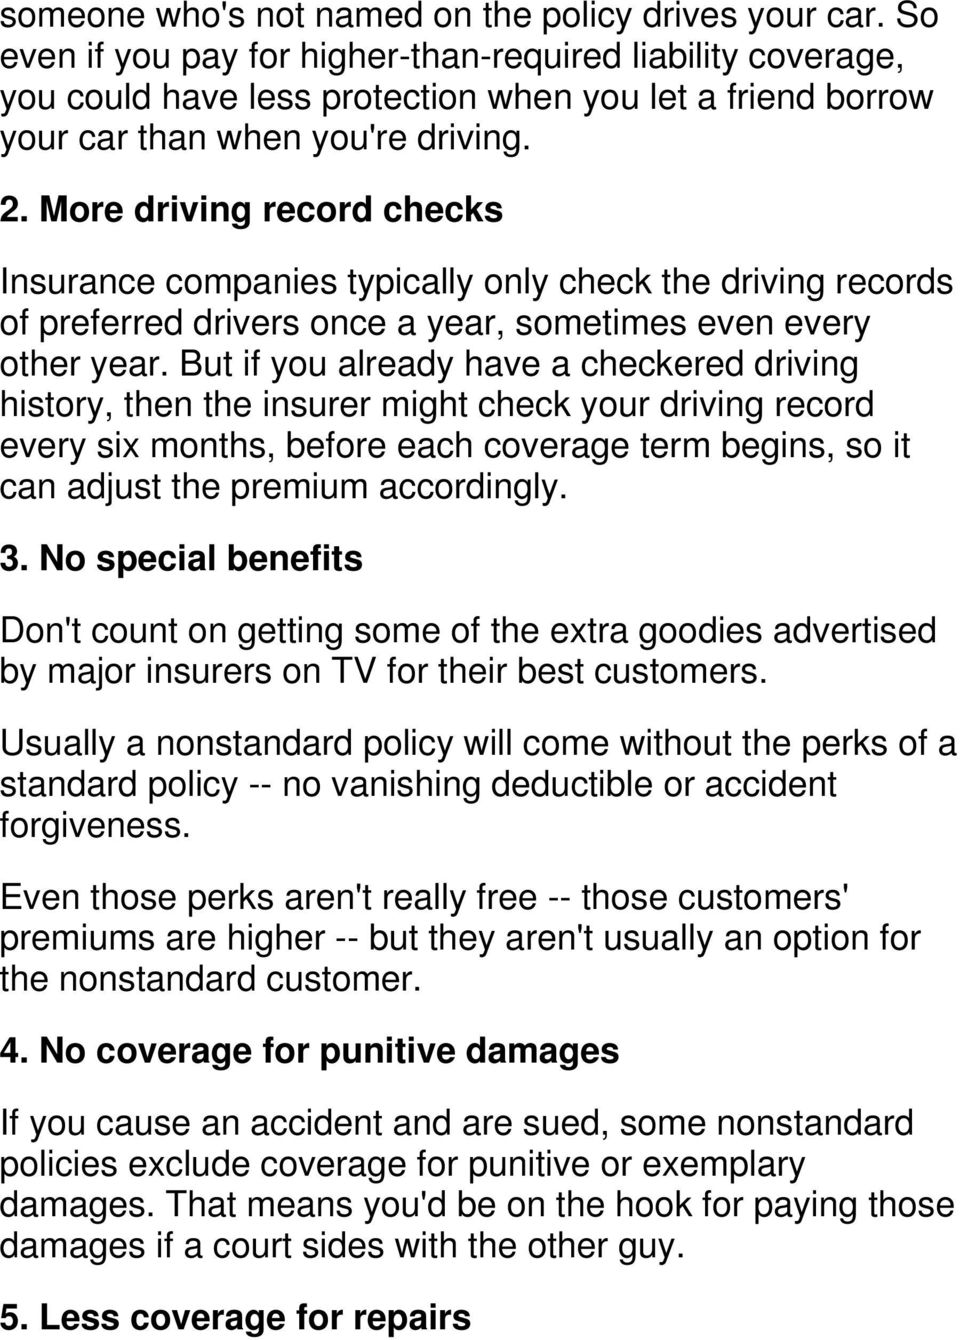 More driving record checks Insurance companies typically only check the driving records of preferred drivers once a year, sometimes even every other year.